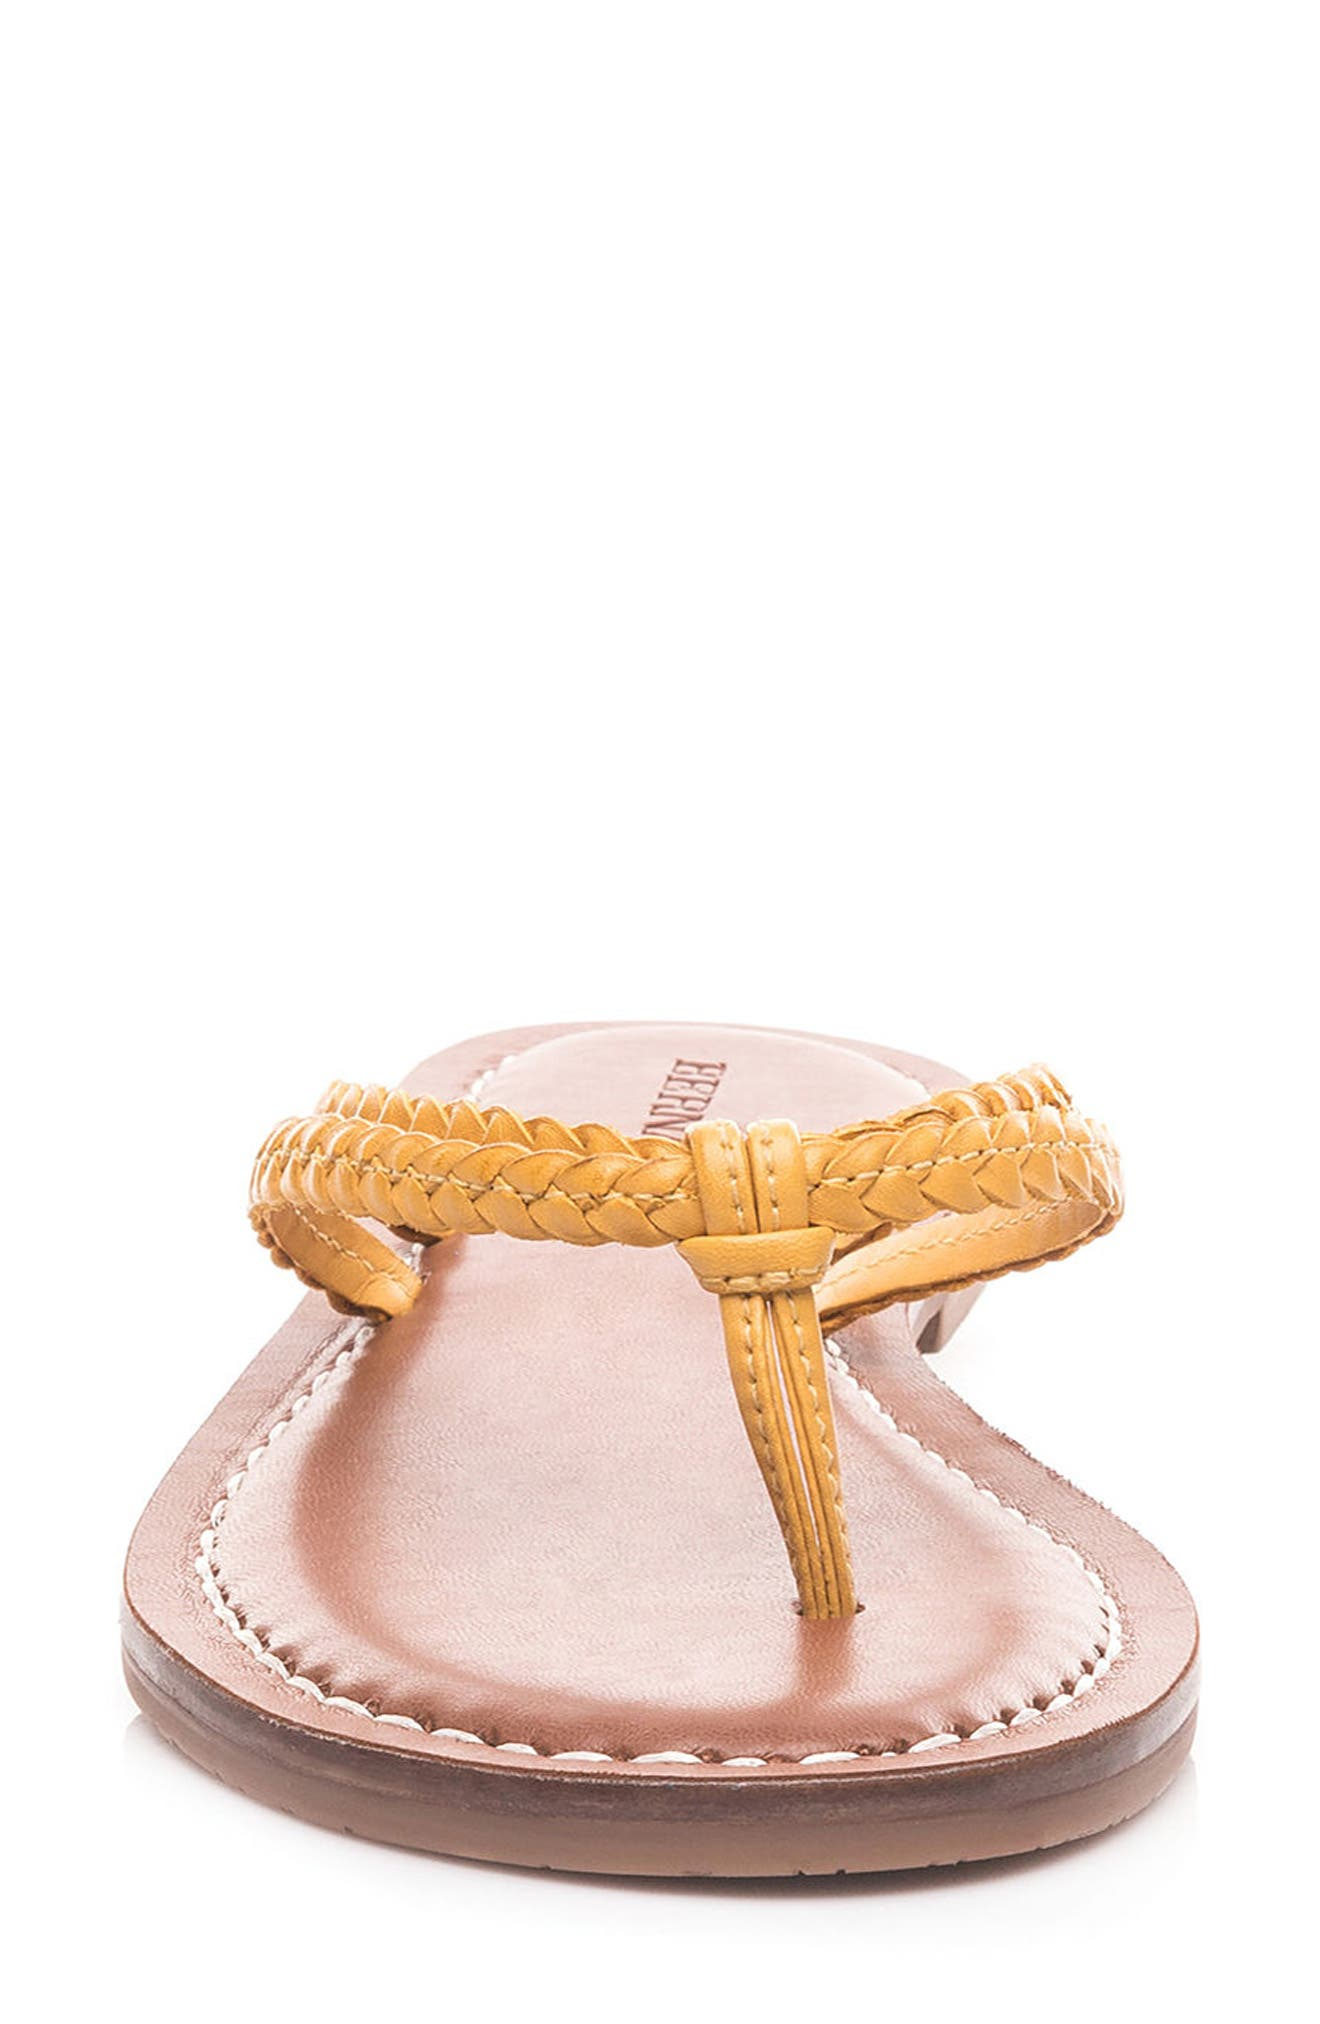 Bernardo Greta Braided Strap Sandal,                             Alternate thumbnail 27, color,